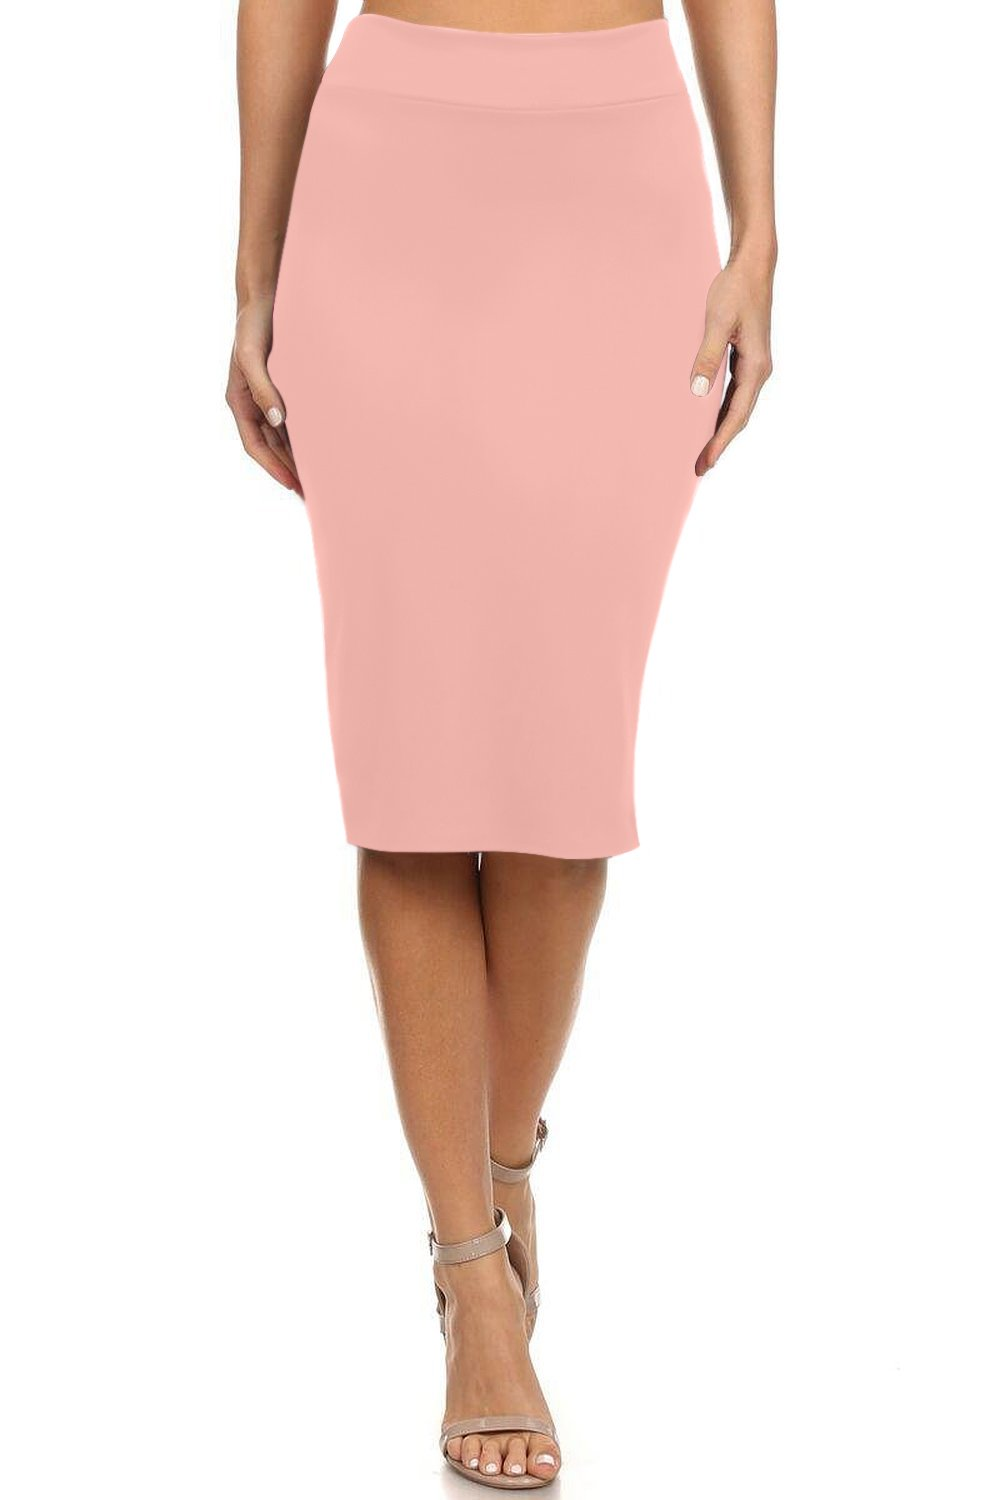 Simlu Womens Below the Knee Pencil Skirt for Office Wear - Made in USA, Rosewood,Blush,X-Large